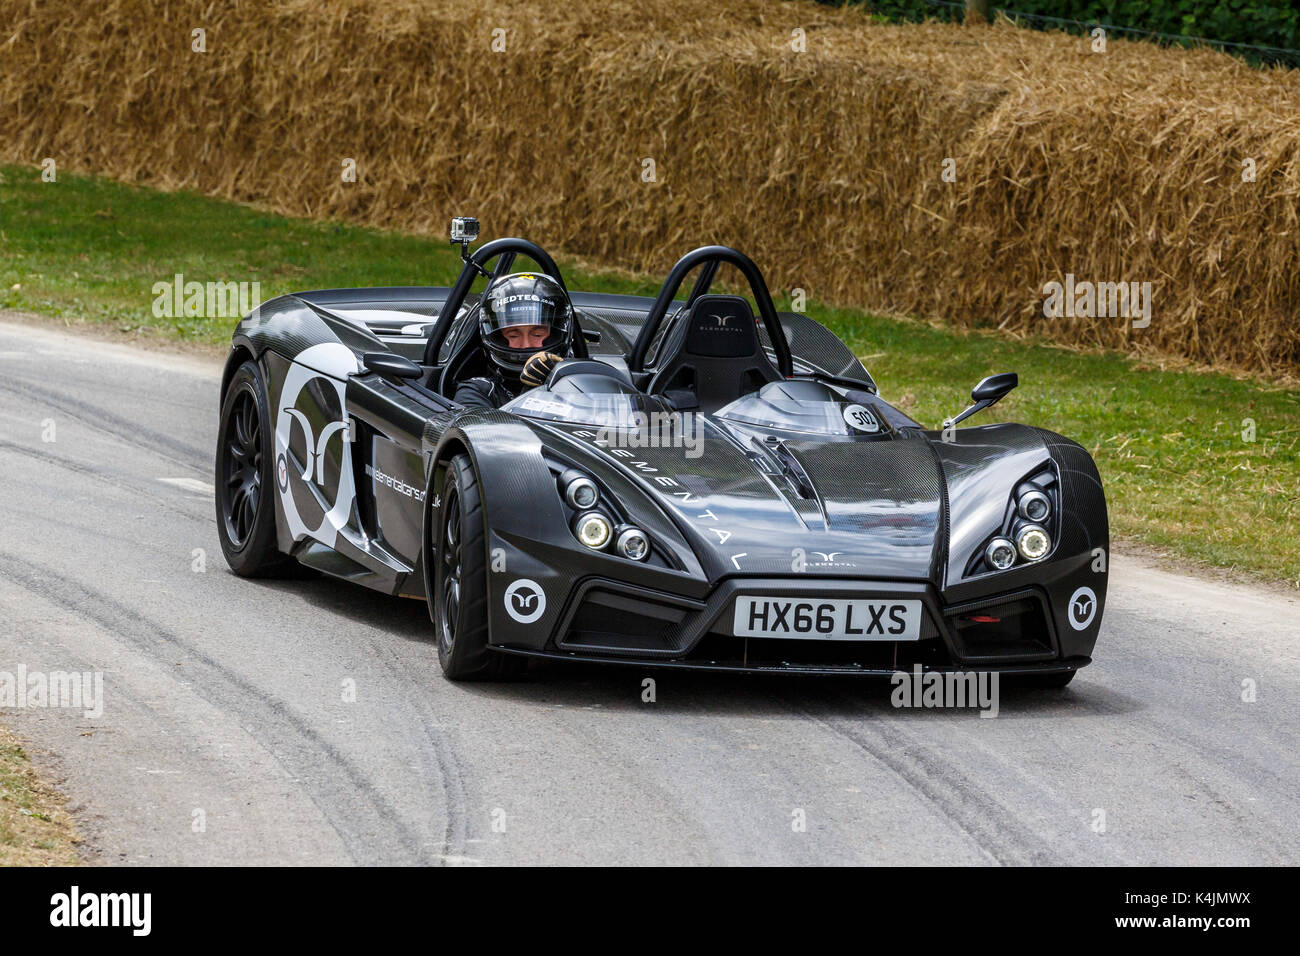 2016 Elemental RP1 at the 2017 Goodwood Festival of Speed, Sussex, UK. - Stock Image